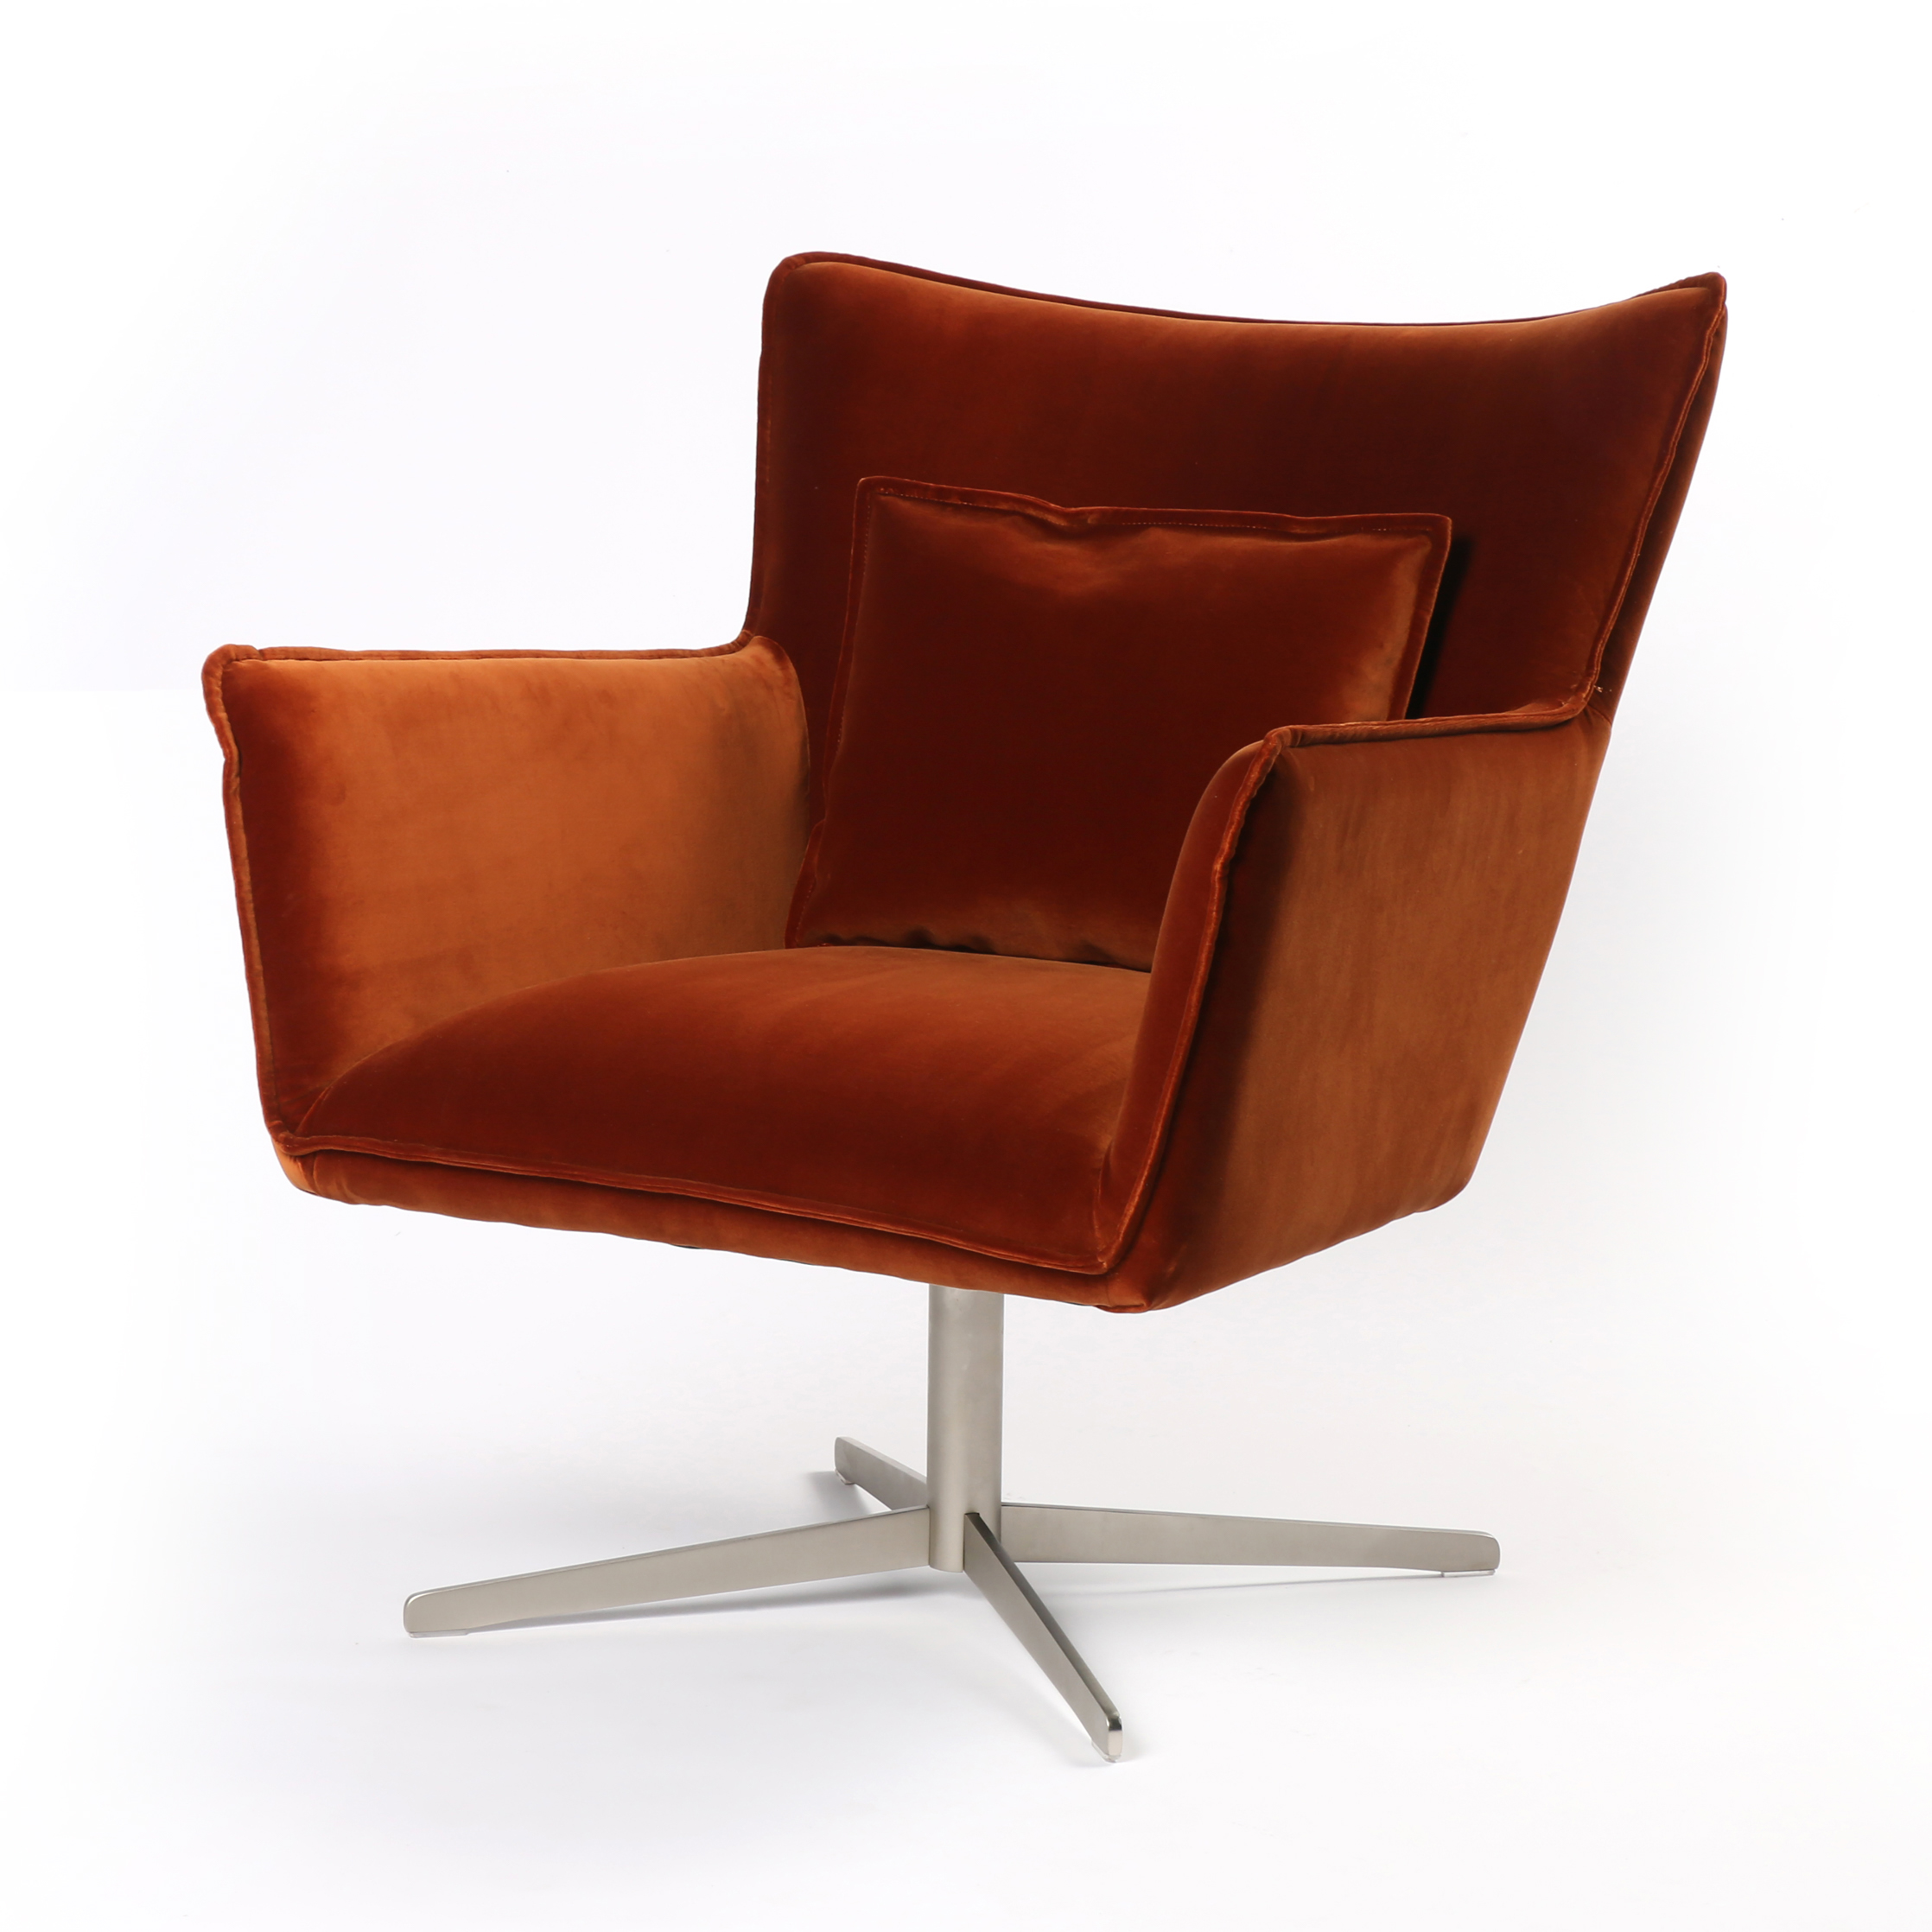 Rust Colored Chair: Lighting & Decor Mag